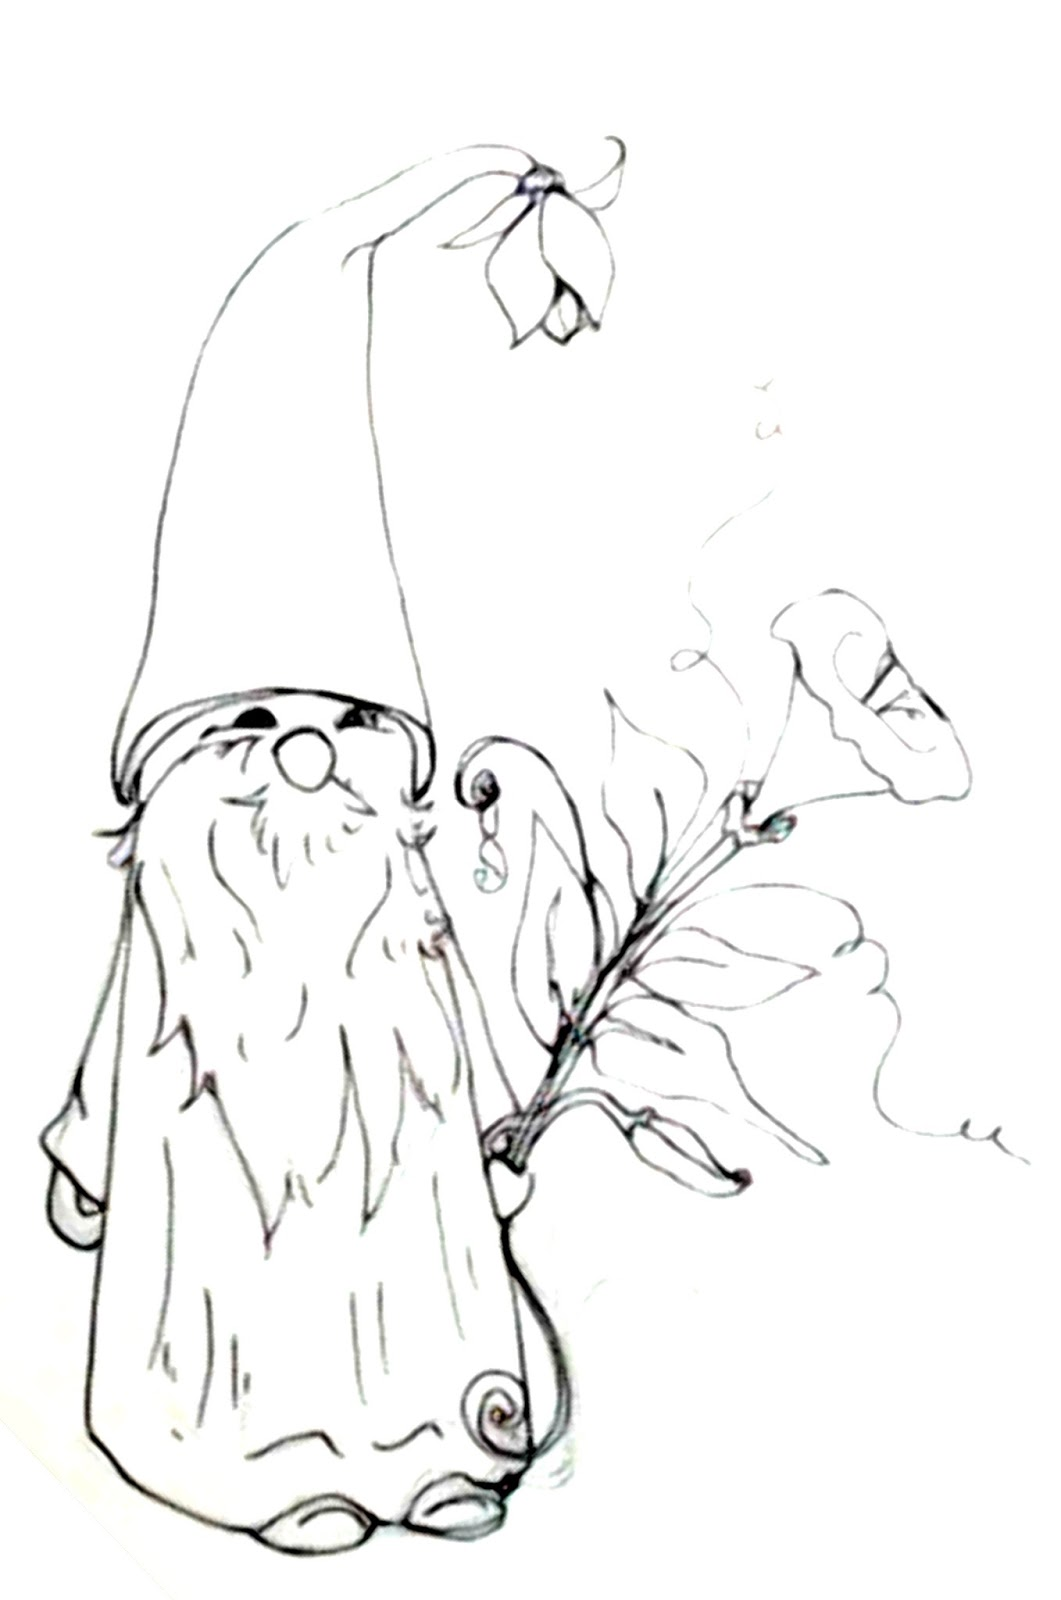 1061x1600 Deliberately Creative Morning Glory Gnome Doodle Real Time Inking